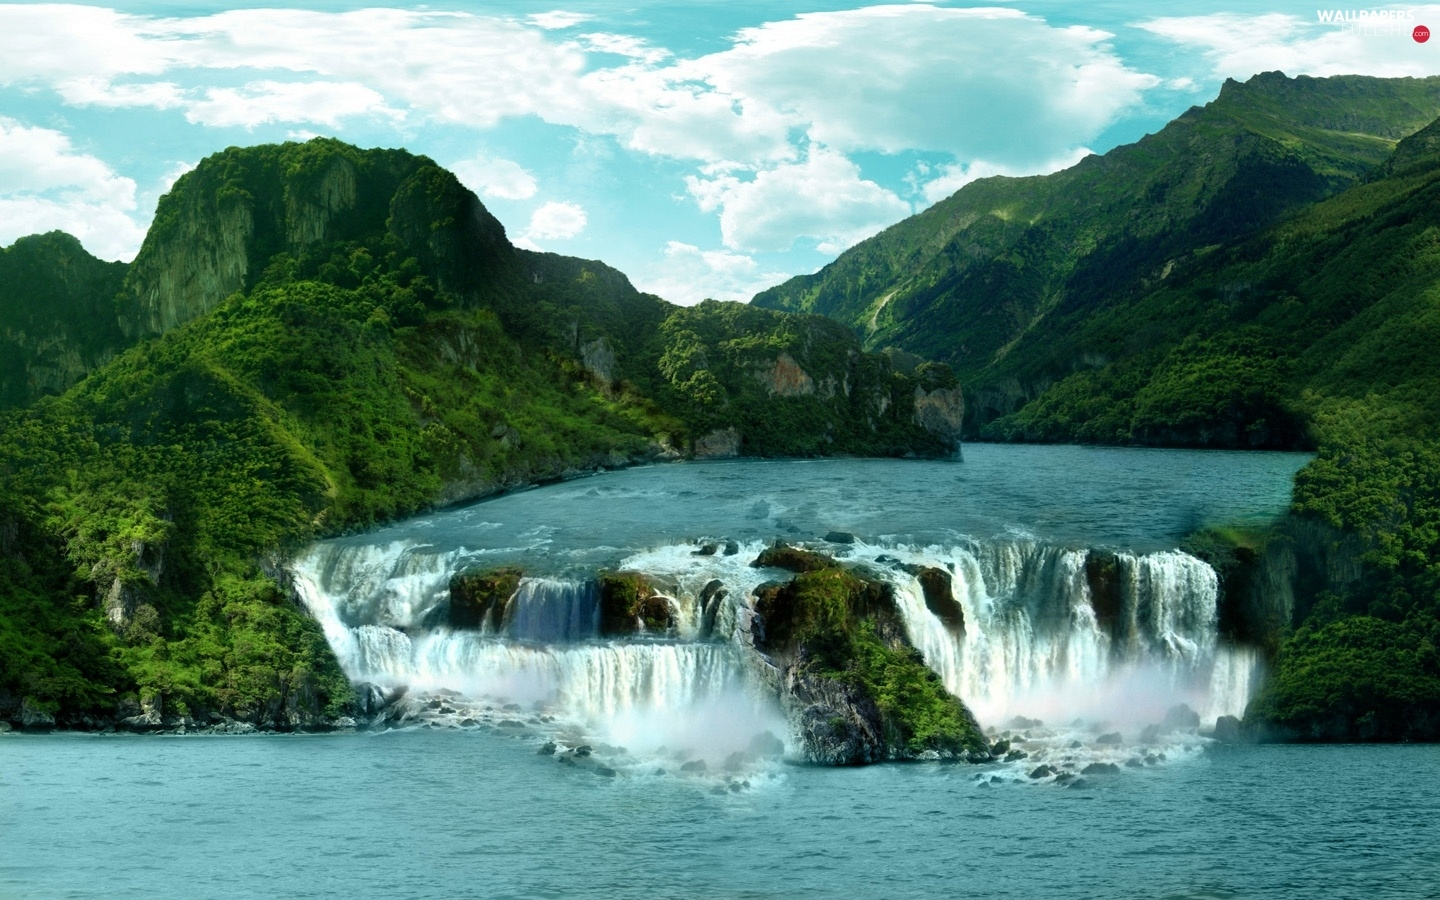 River, Mountains, waterfall